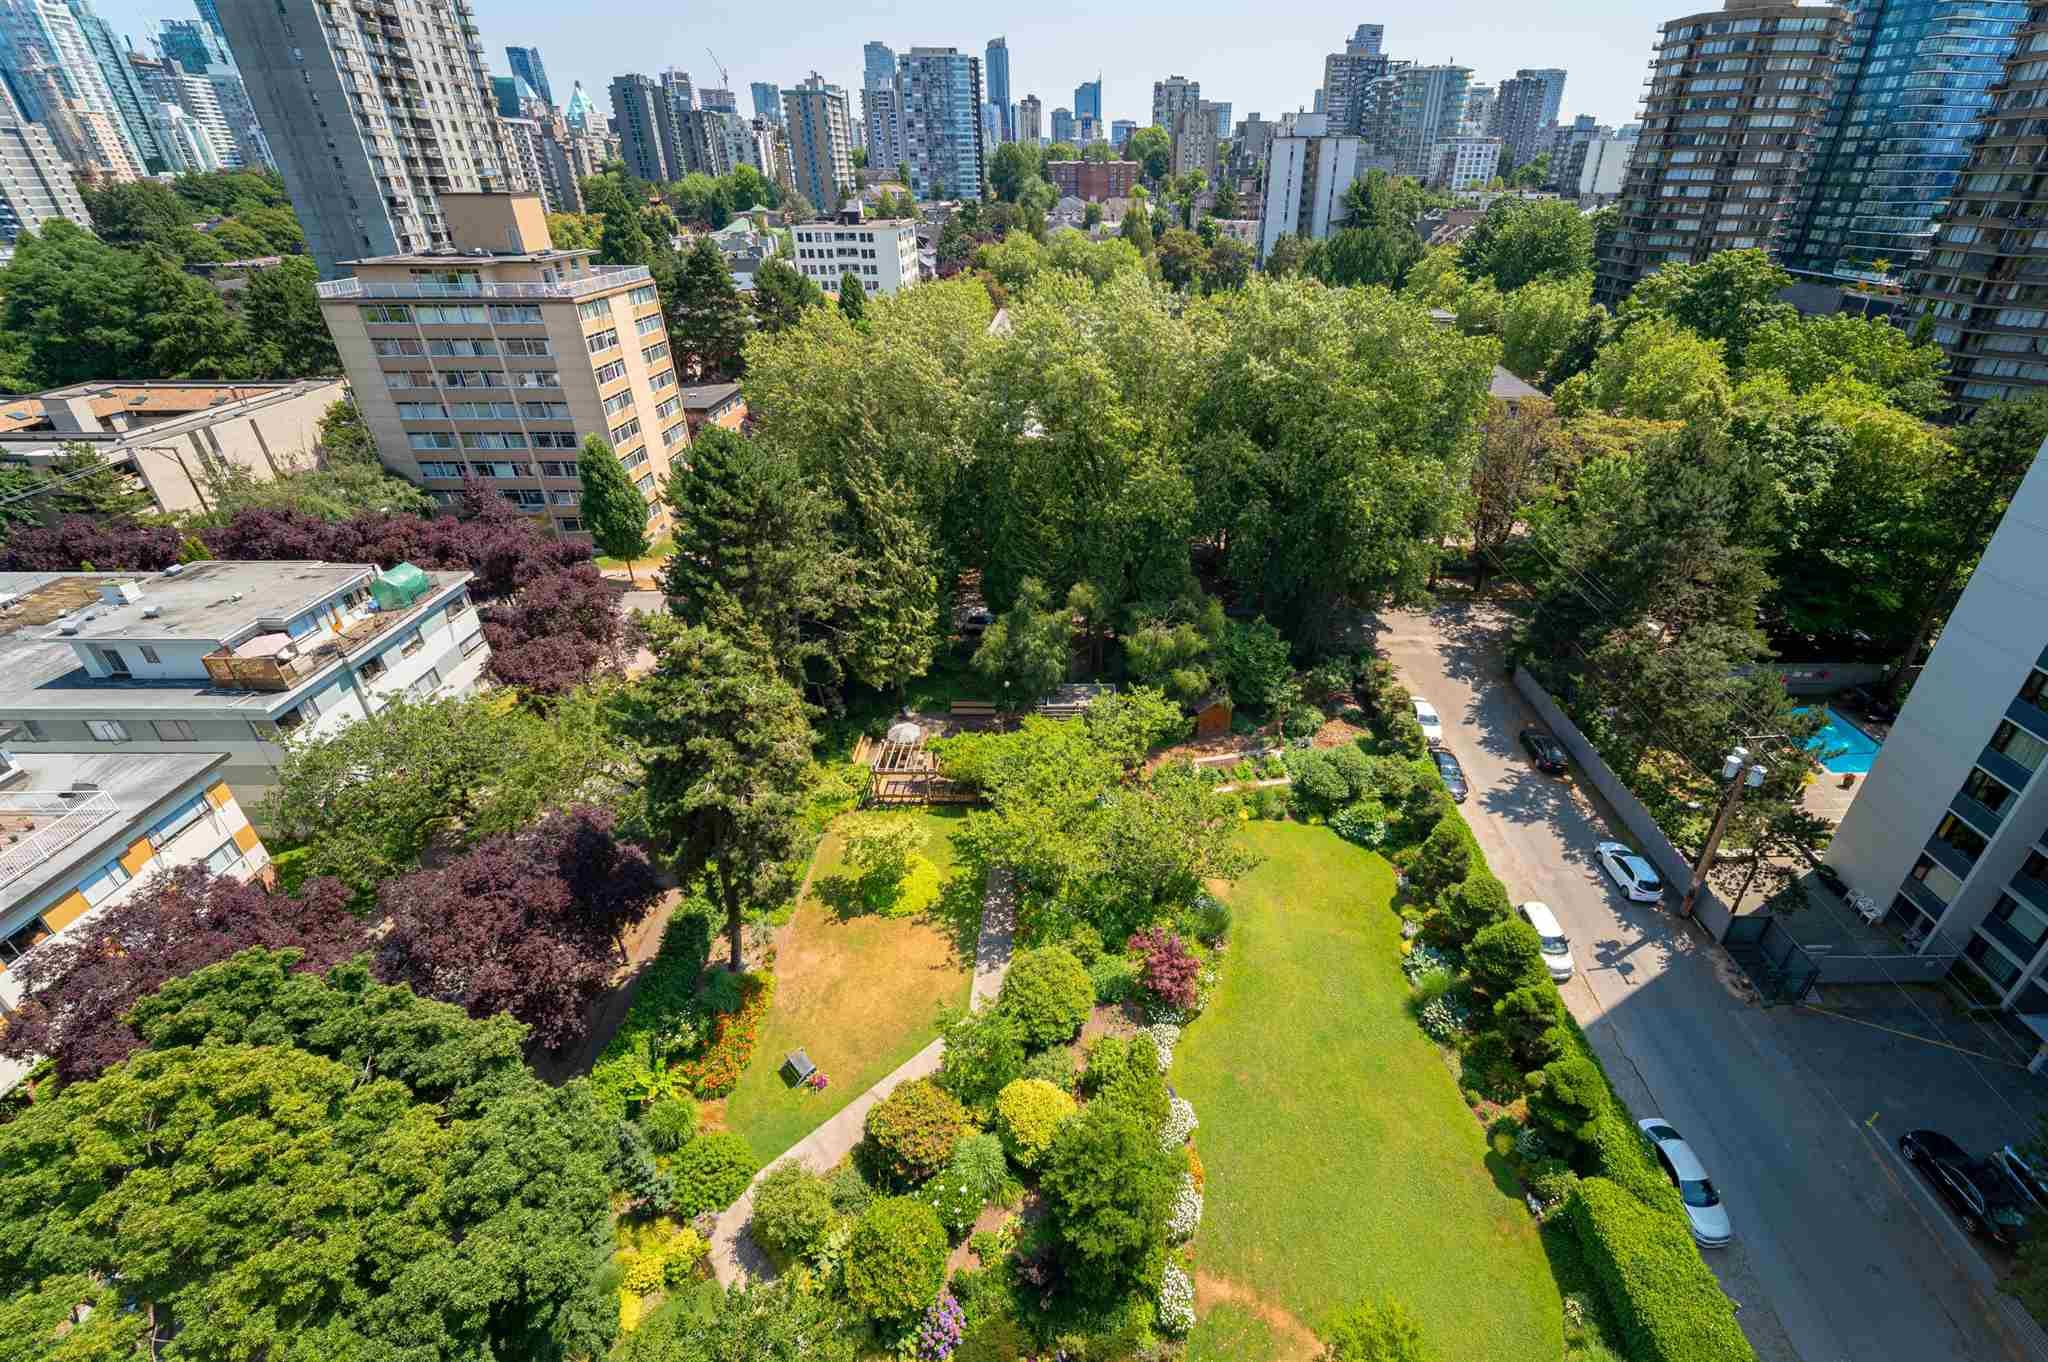 """Main Photo: 1505 1740 COMOX Street in Vancouver: West End VW Condo for sale in """"THE SANDPIPER"""" (Vancouver West)  : MLS®# R2602814"""